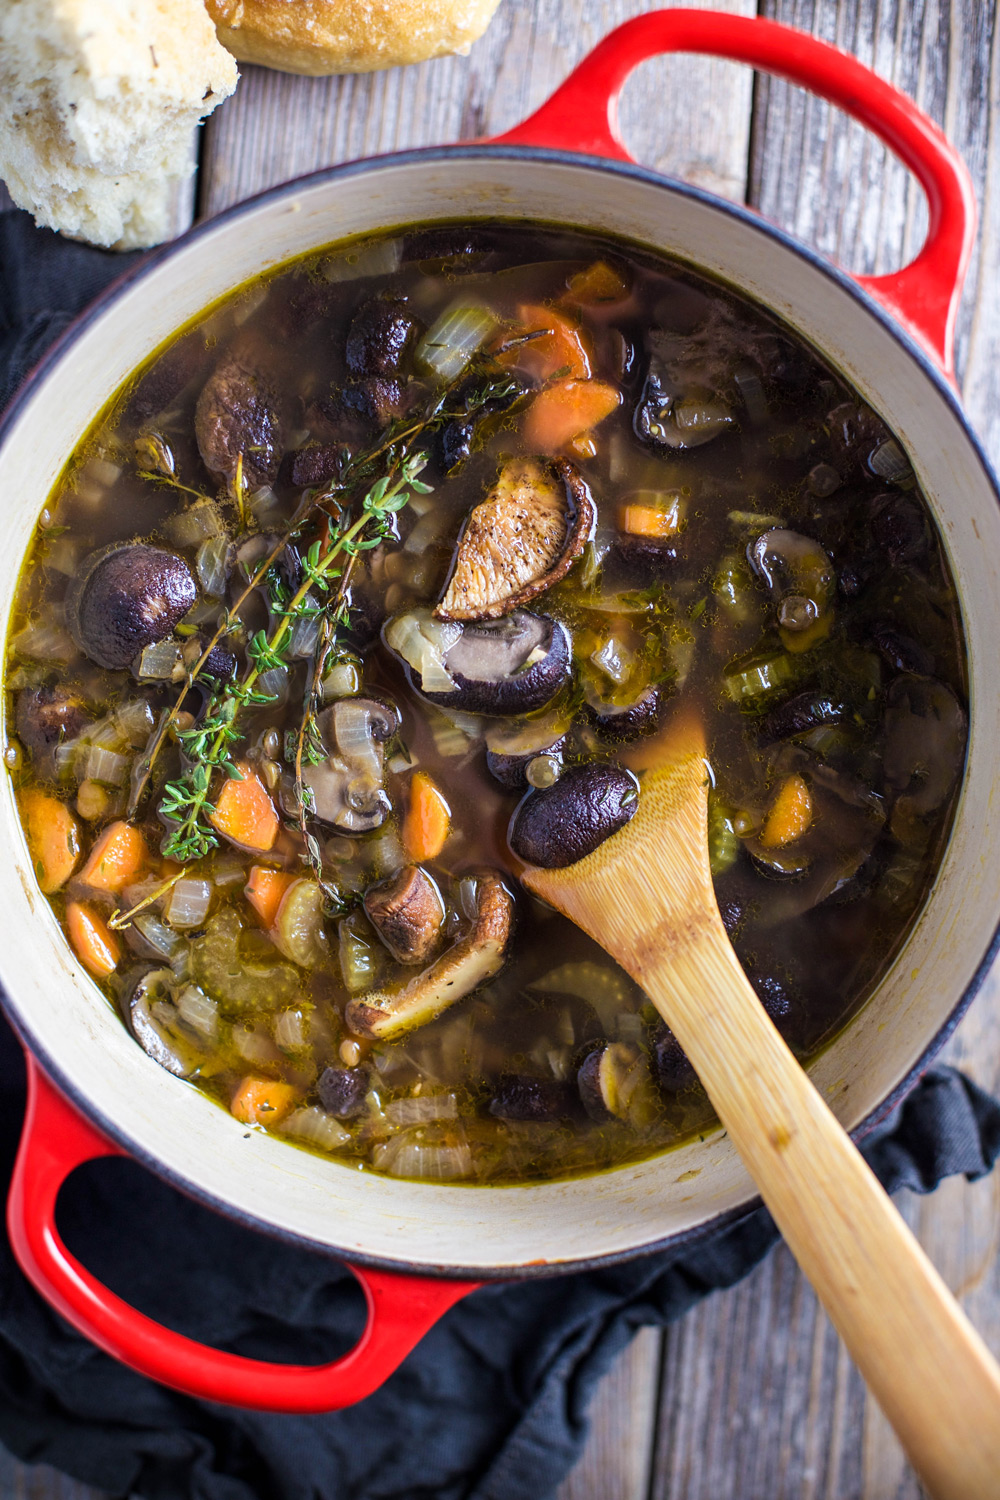 Smoked Mushroom and Lentil Soup